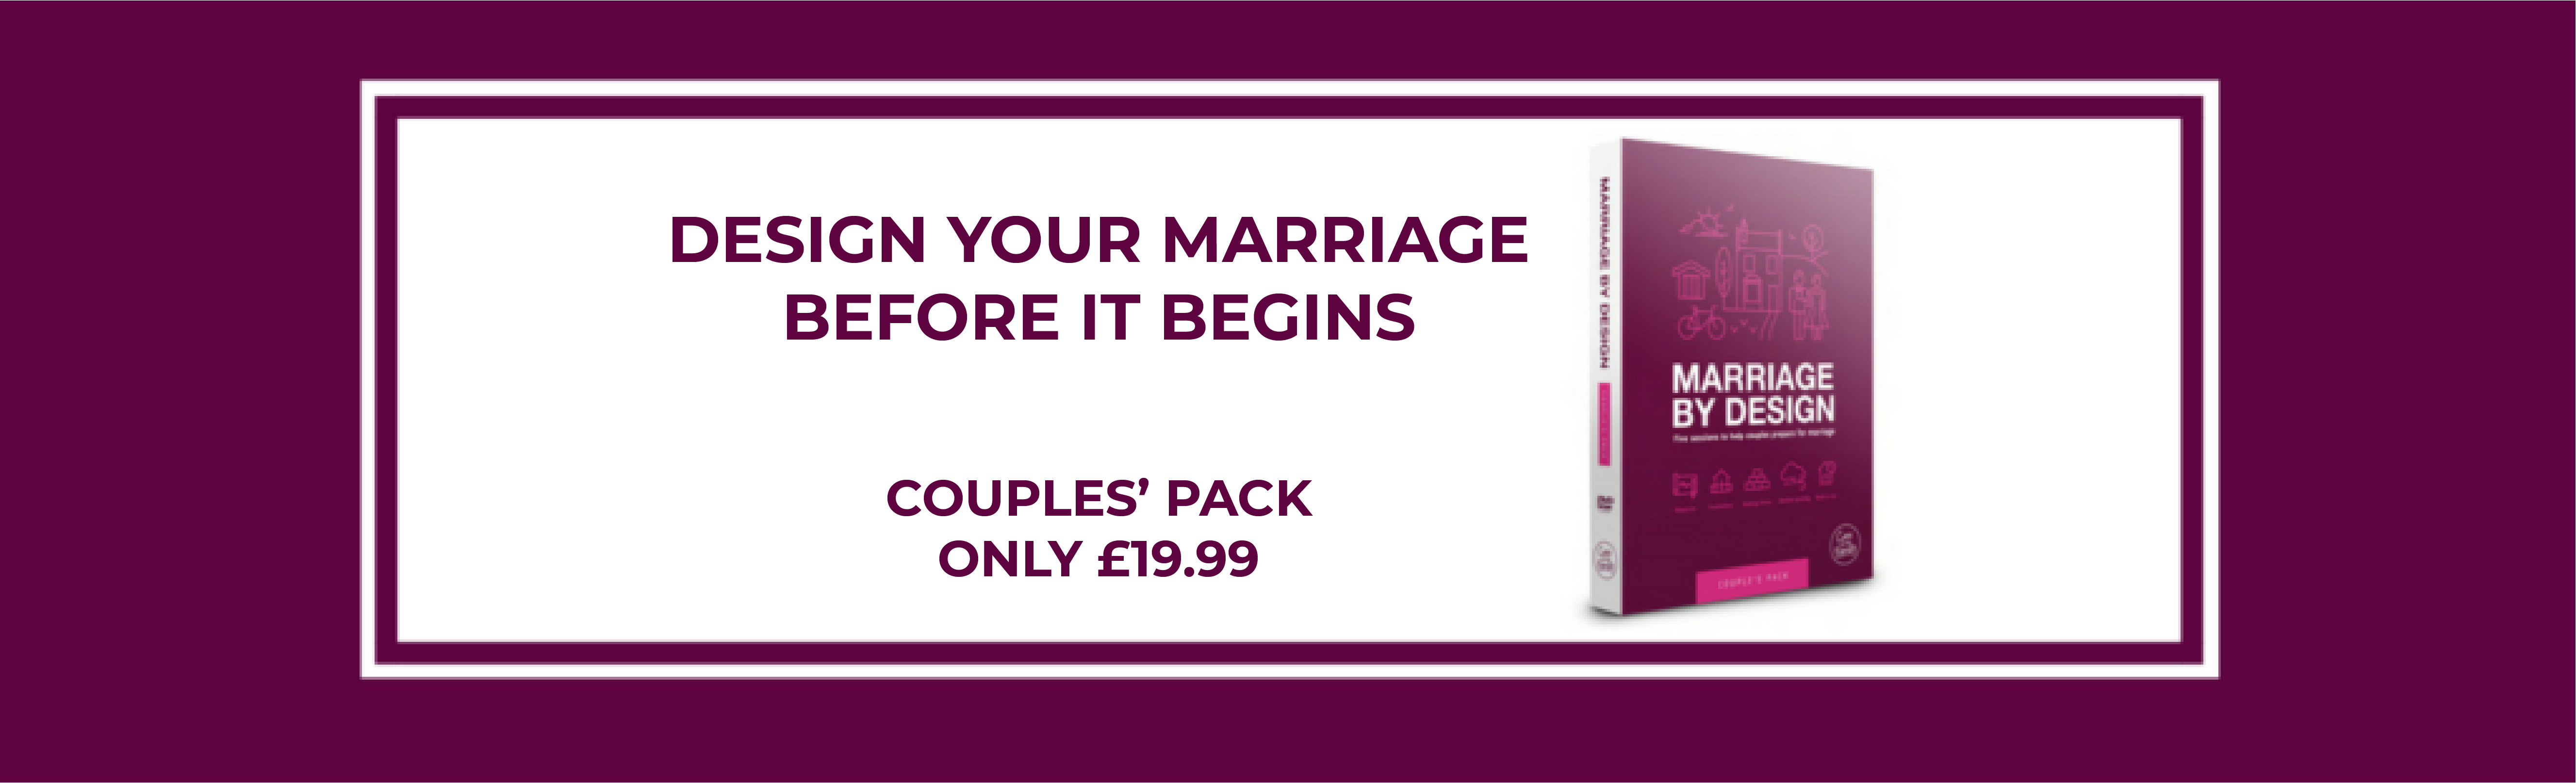 Marriage by design shop banner